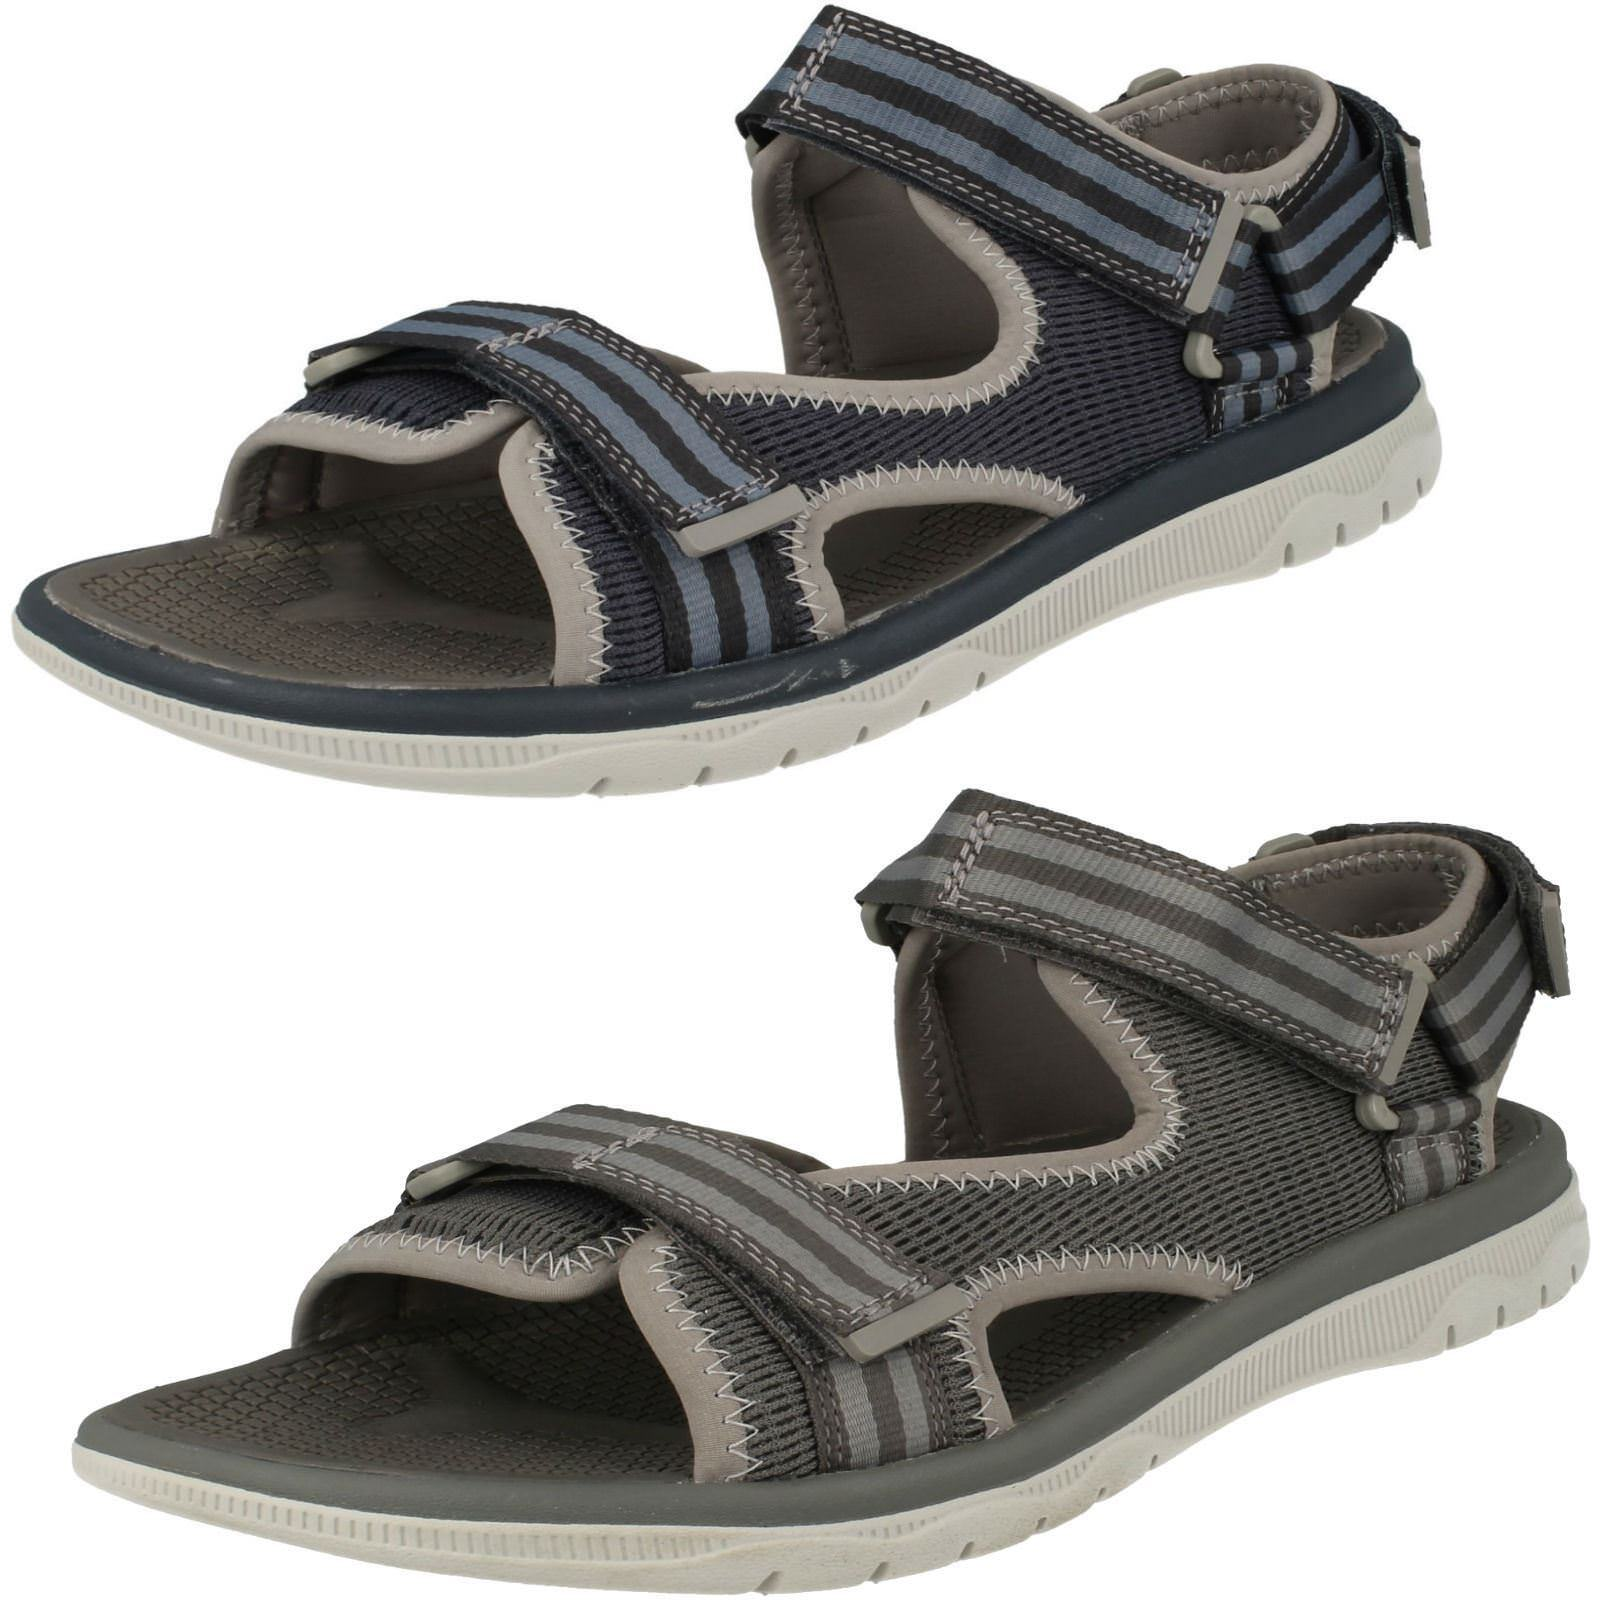 Gentlemen/Ladies Cloudsteppers by Clarks Mens you Sandals Balta Sky for you Mens to choose Won highly appreciated and widely trusted at home and abroad Different styles and styles GR509 7dfdfe